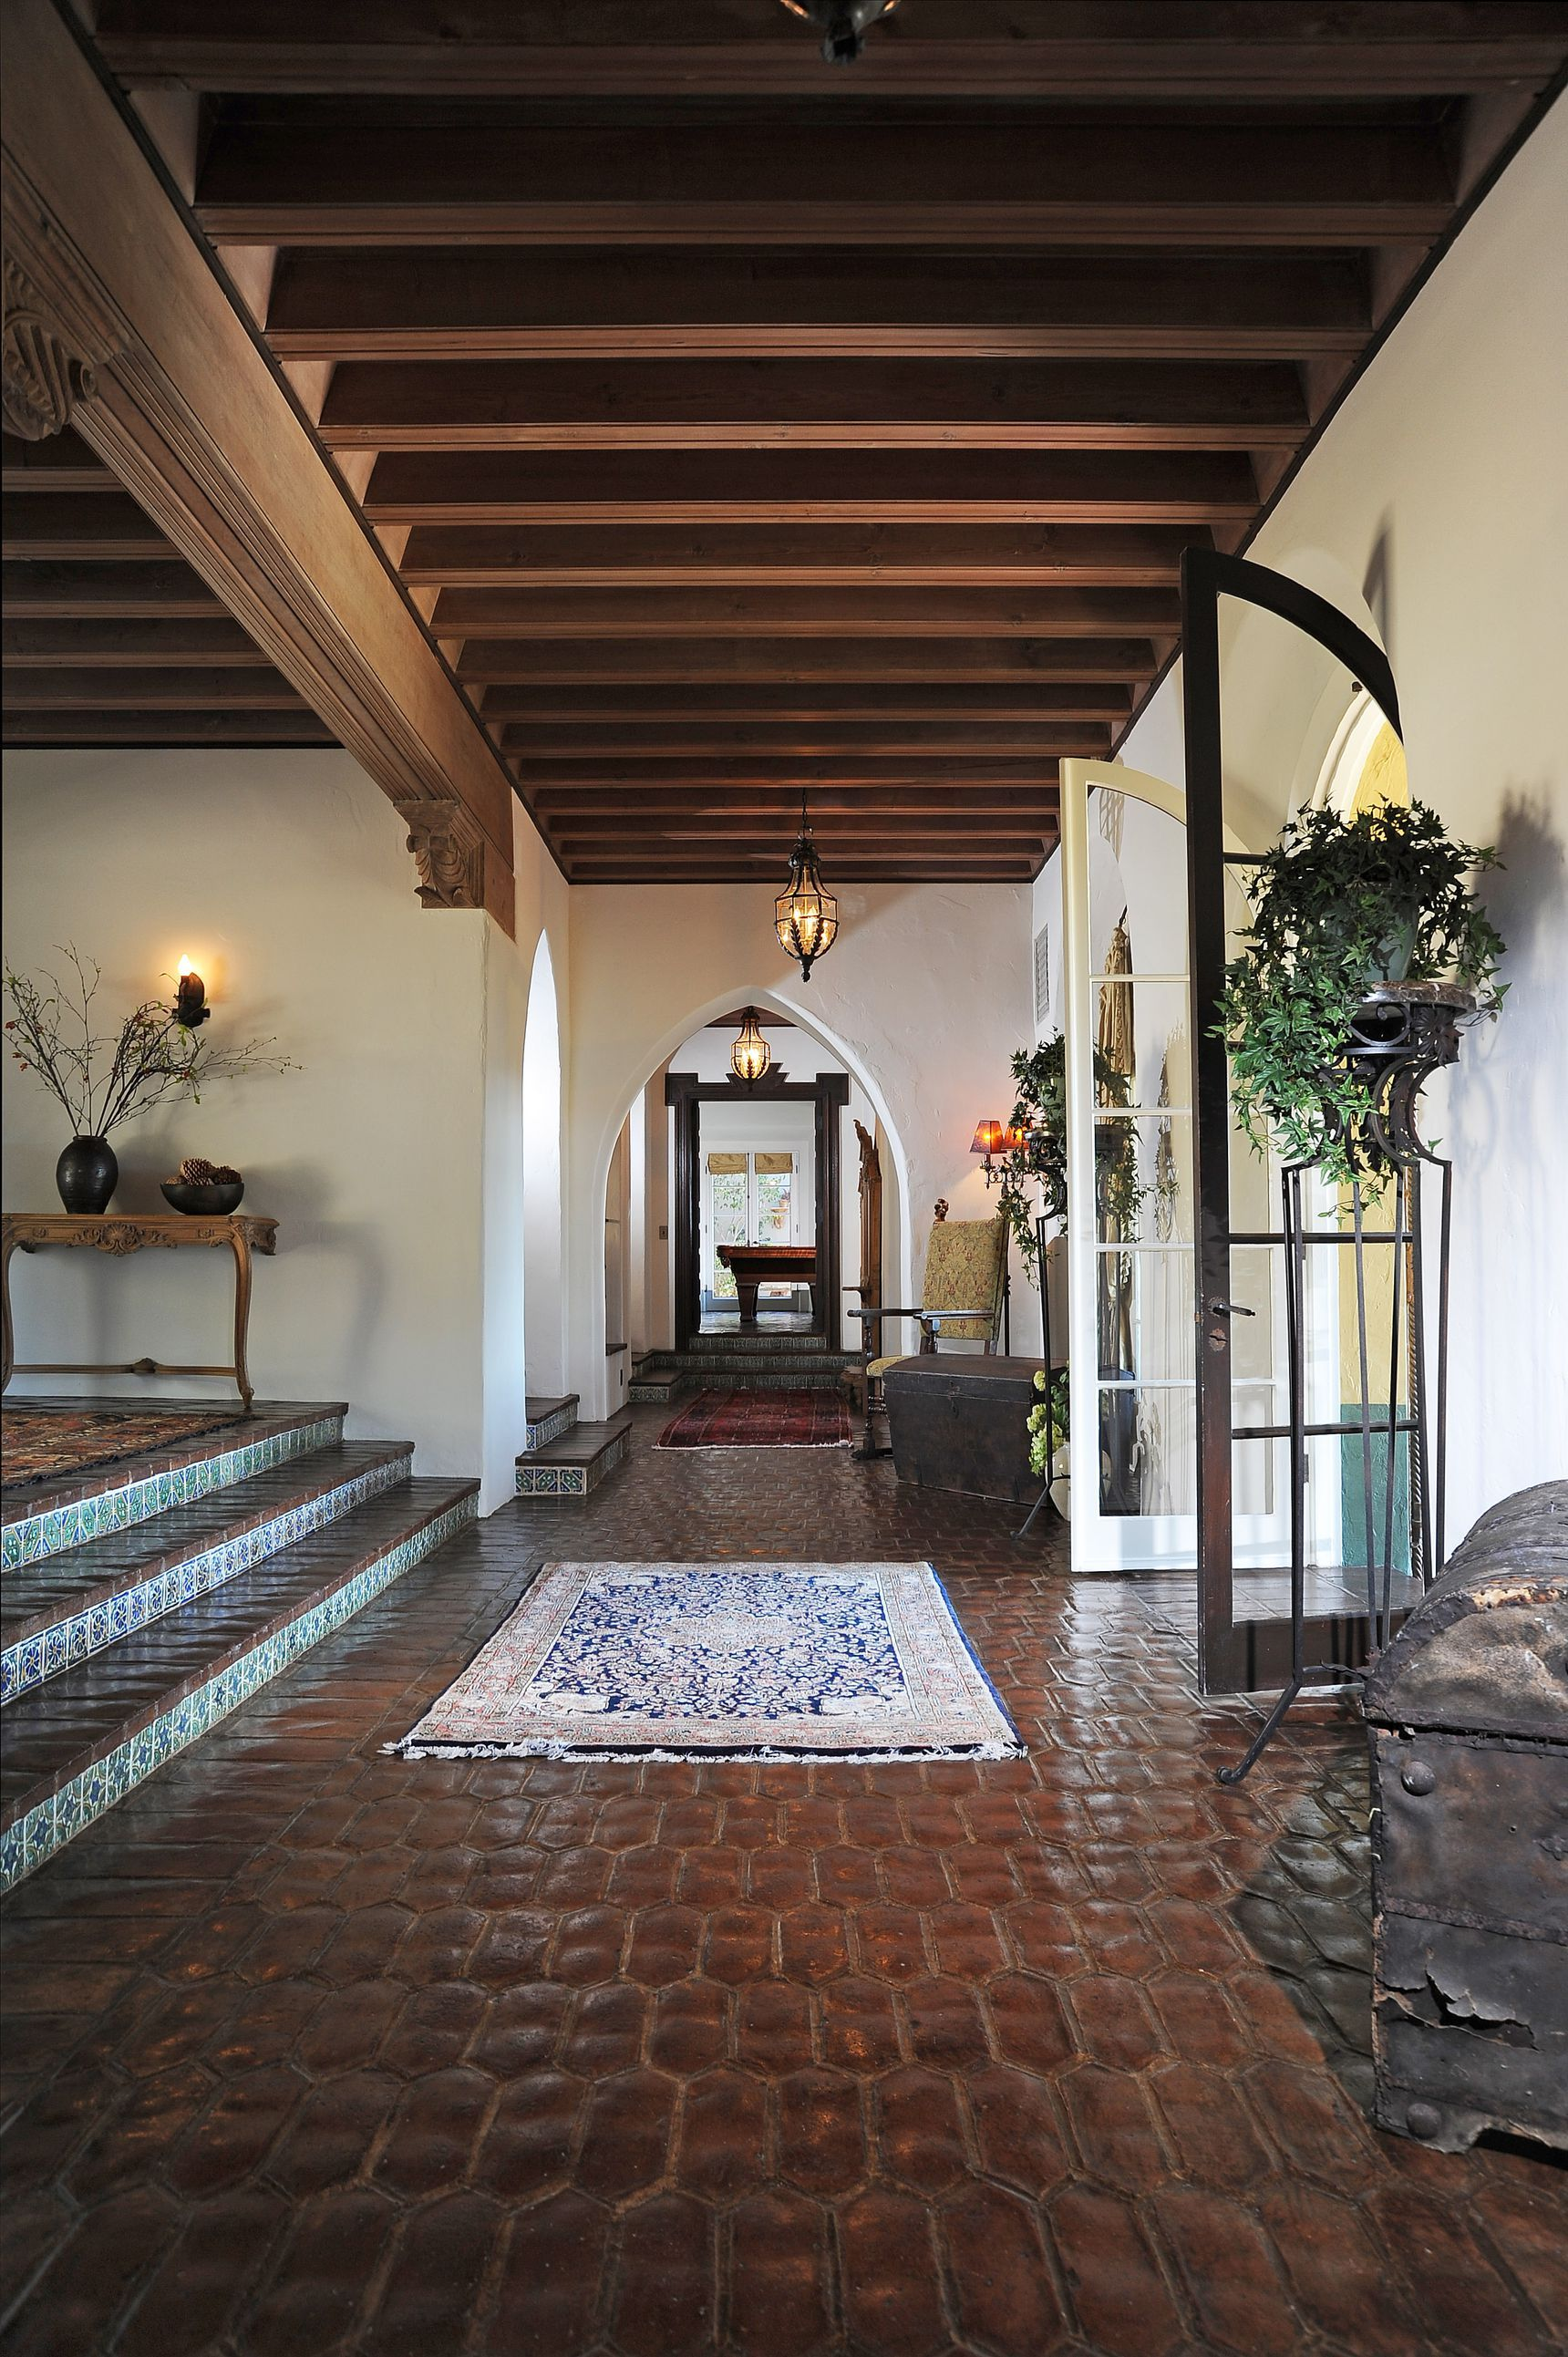 17 Stunning Interior Design Ideas For Living Room: Stunning Spanish Revival Is SoCal Living At Its Finest For